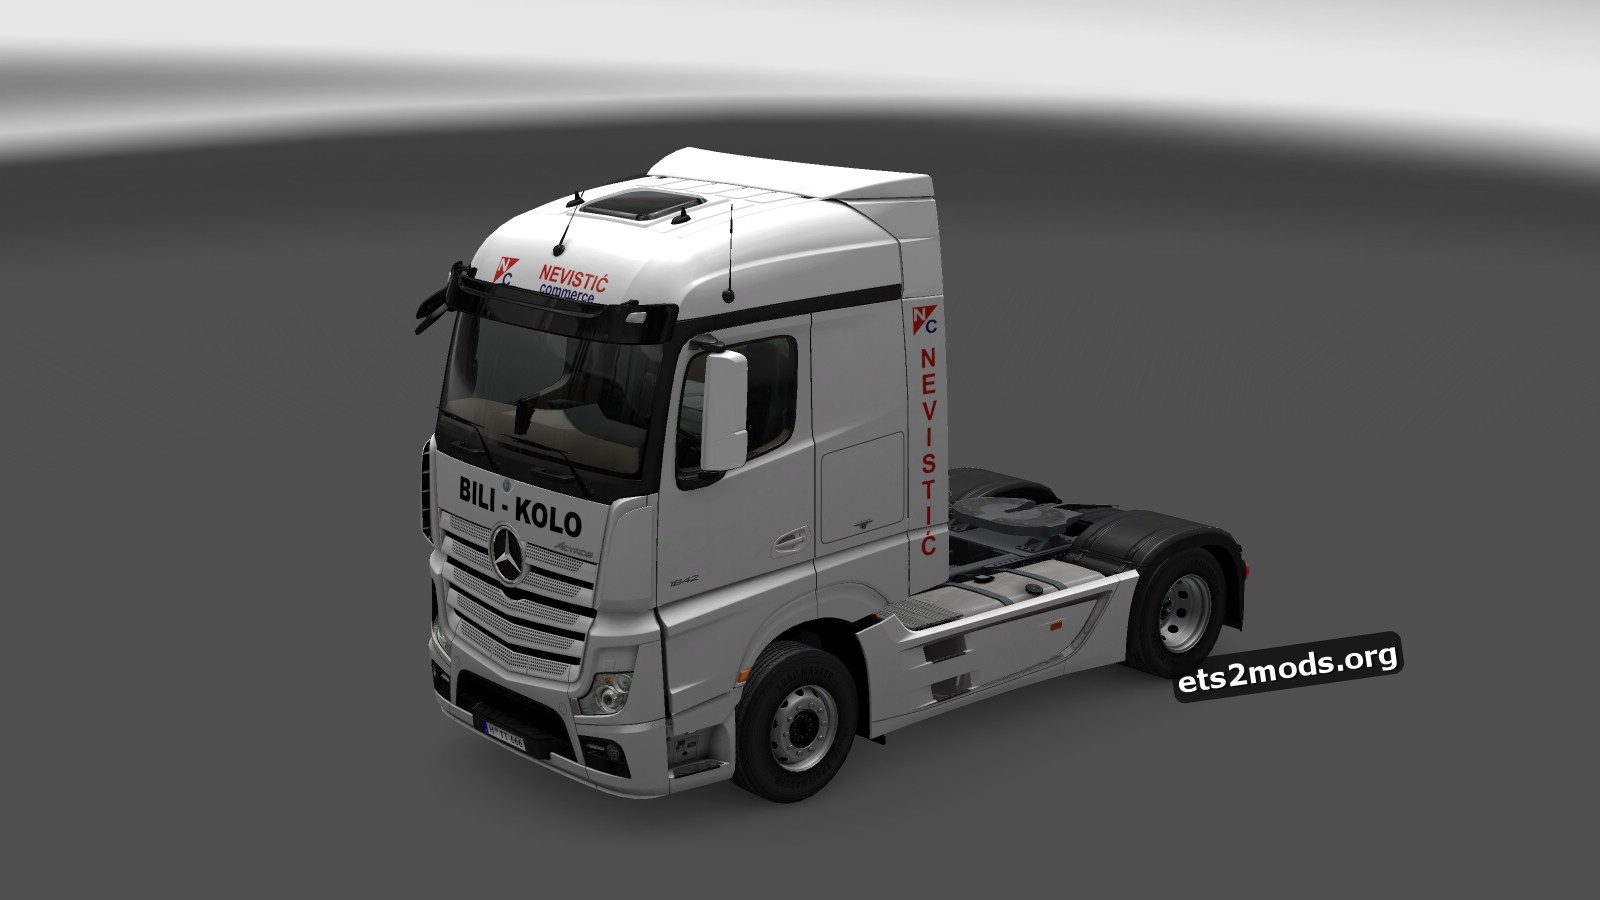 Nevisitc Commerc Skin for Mercedes MP4